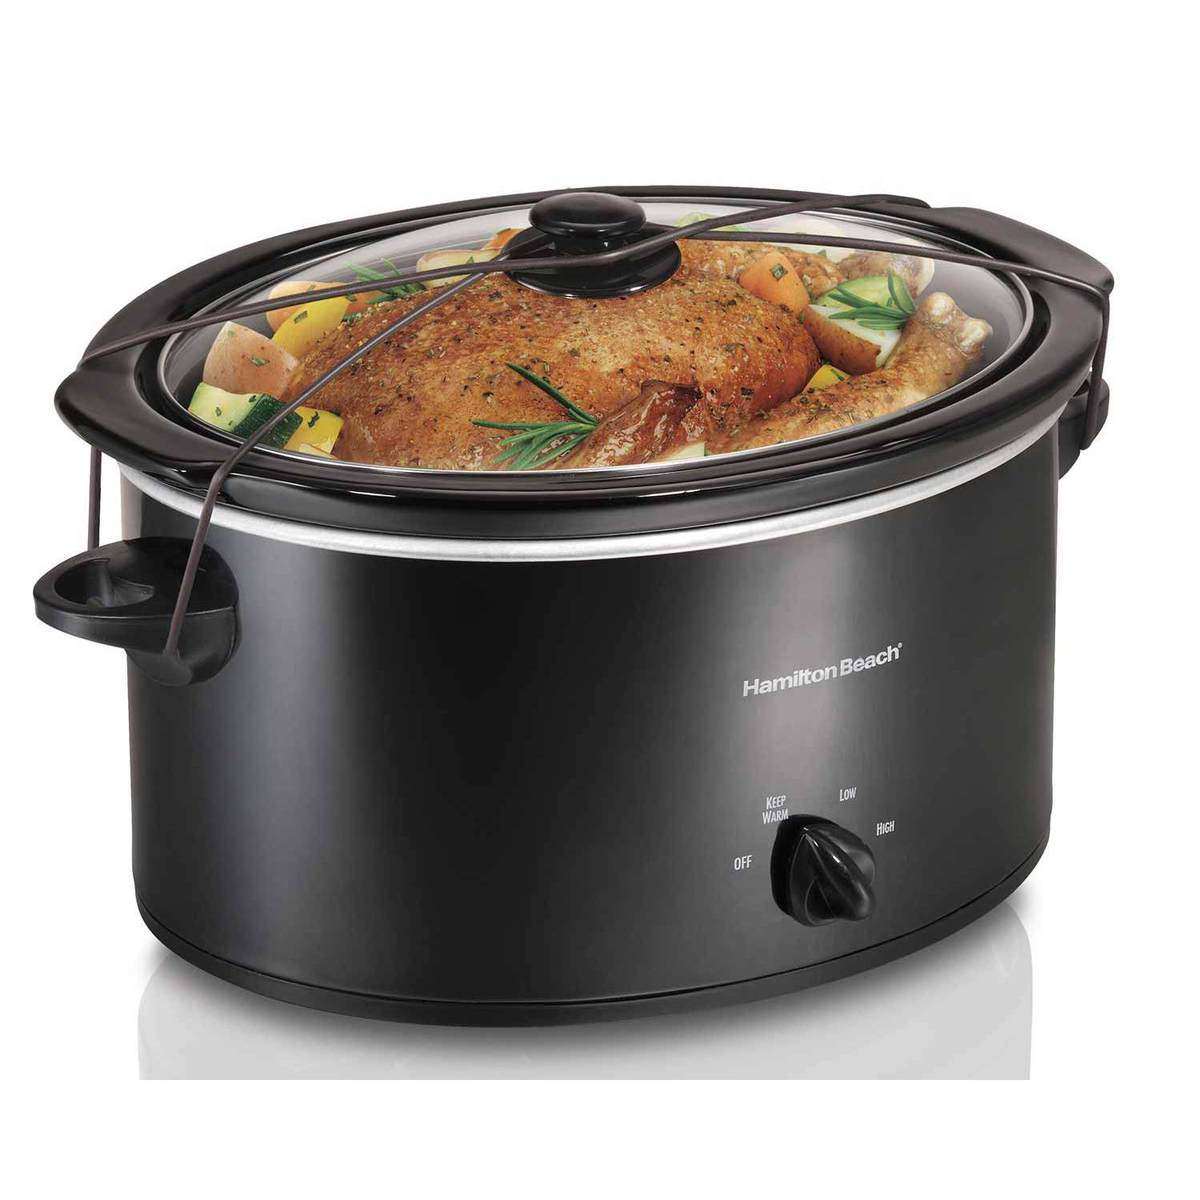 5 Quart Portable Slow Cooker (33256)